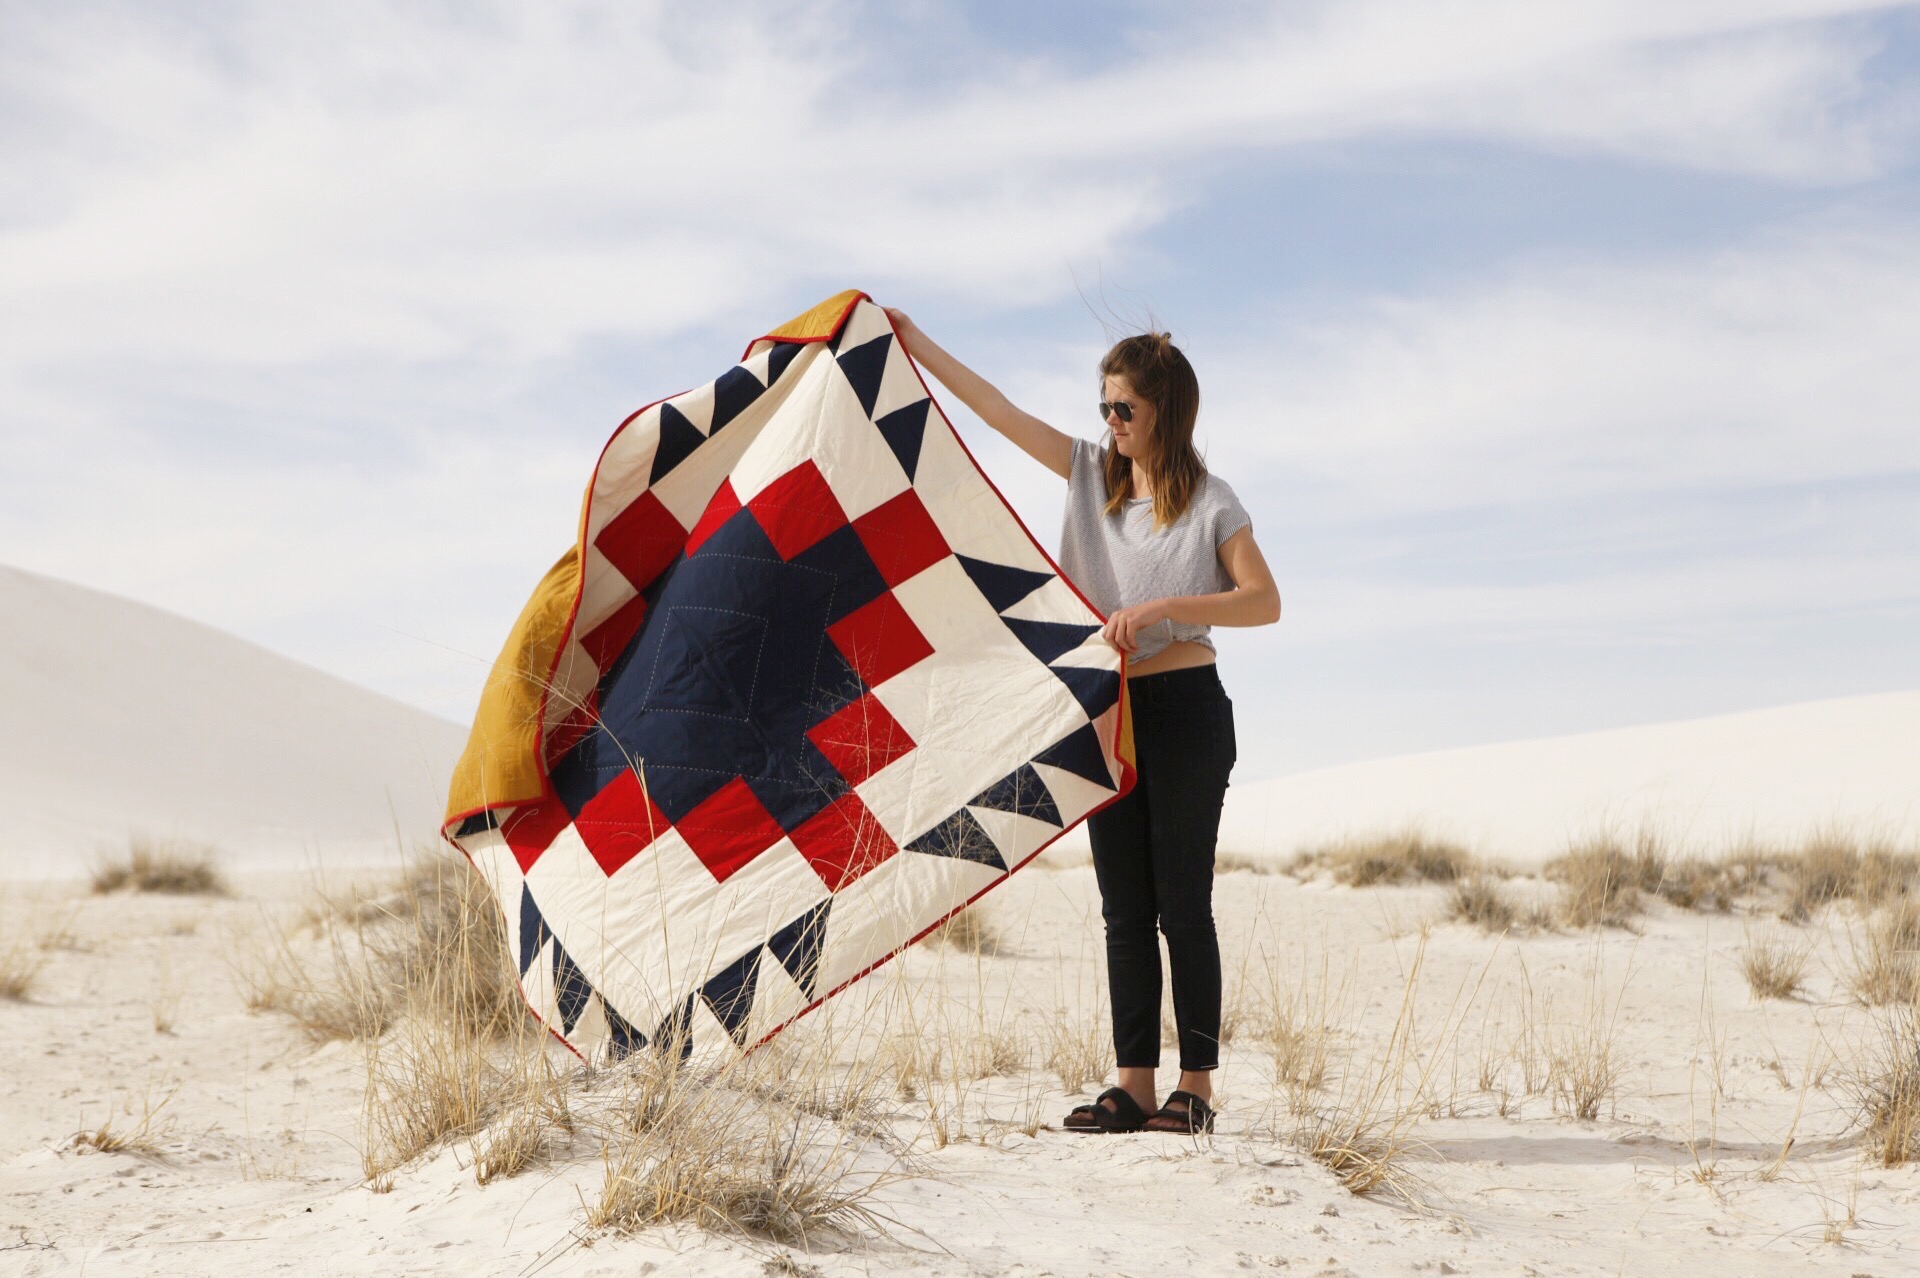 February 2015 at White Sands with the Grandfather Quilt